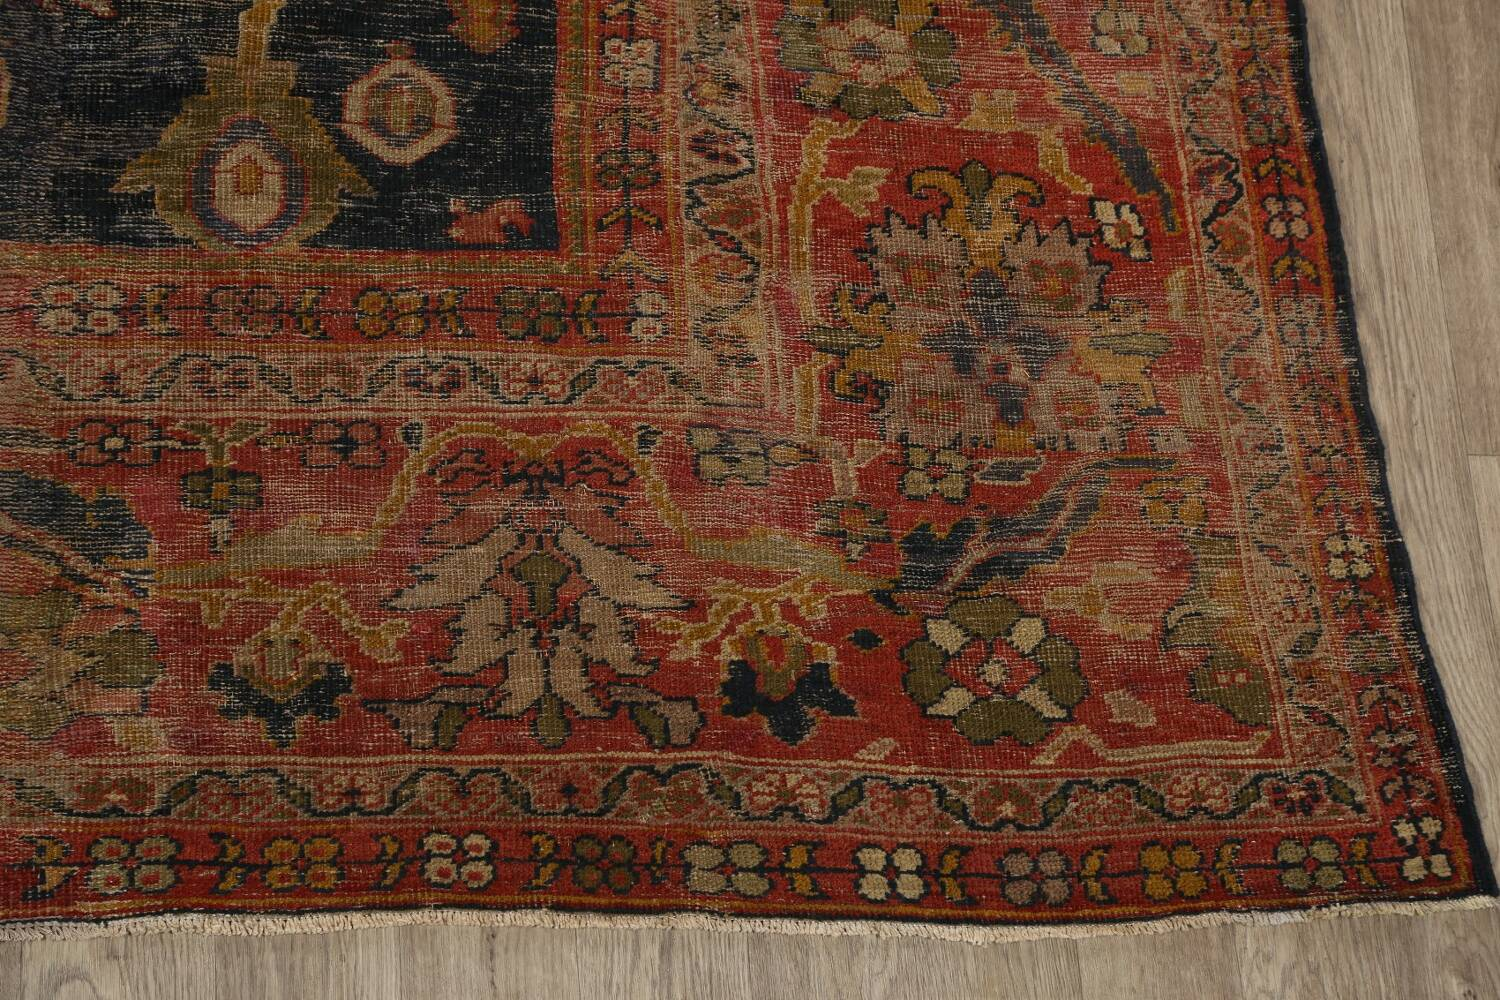 Antique Vegetable Dye Sultanabad Persian Area Rug 11x14 Large image 5